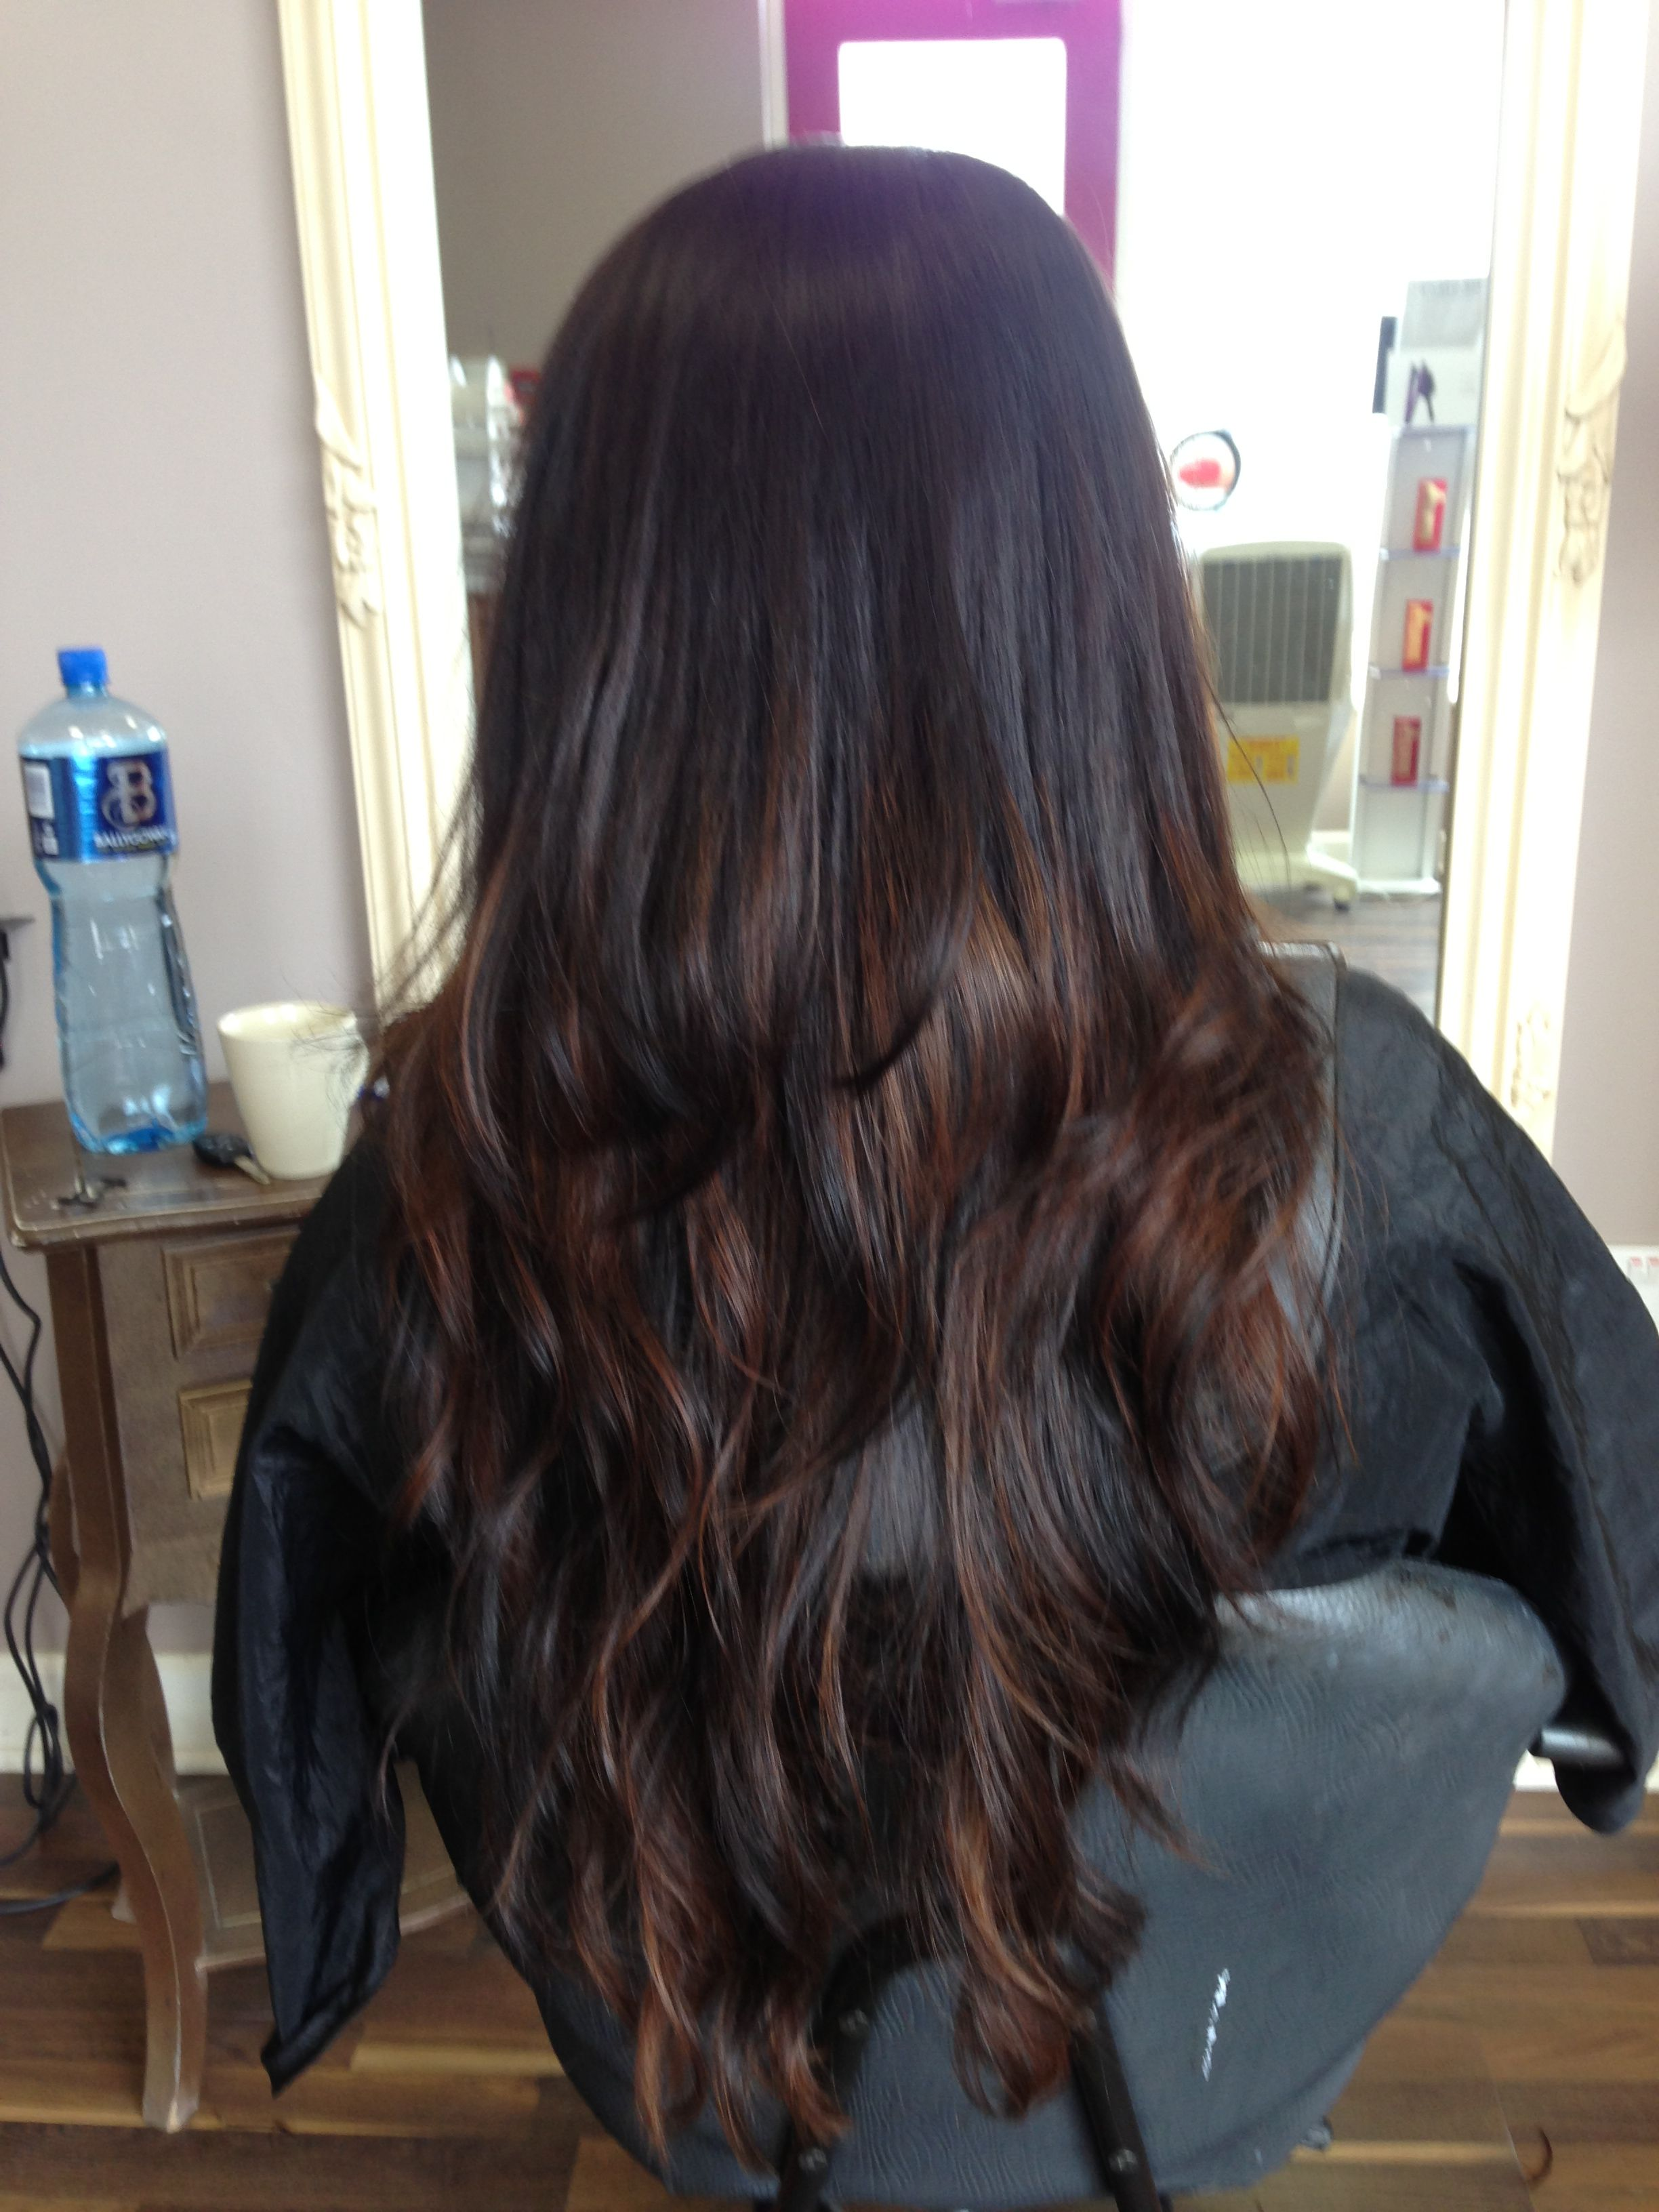 Pin by Laura Wrafter on Hair   Black hair balayage, Hair styles ...